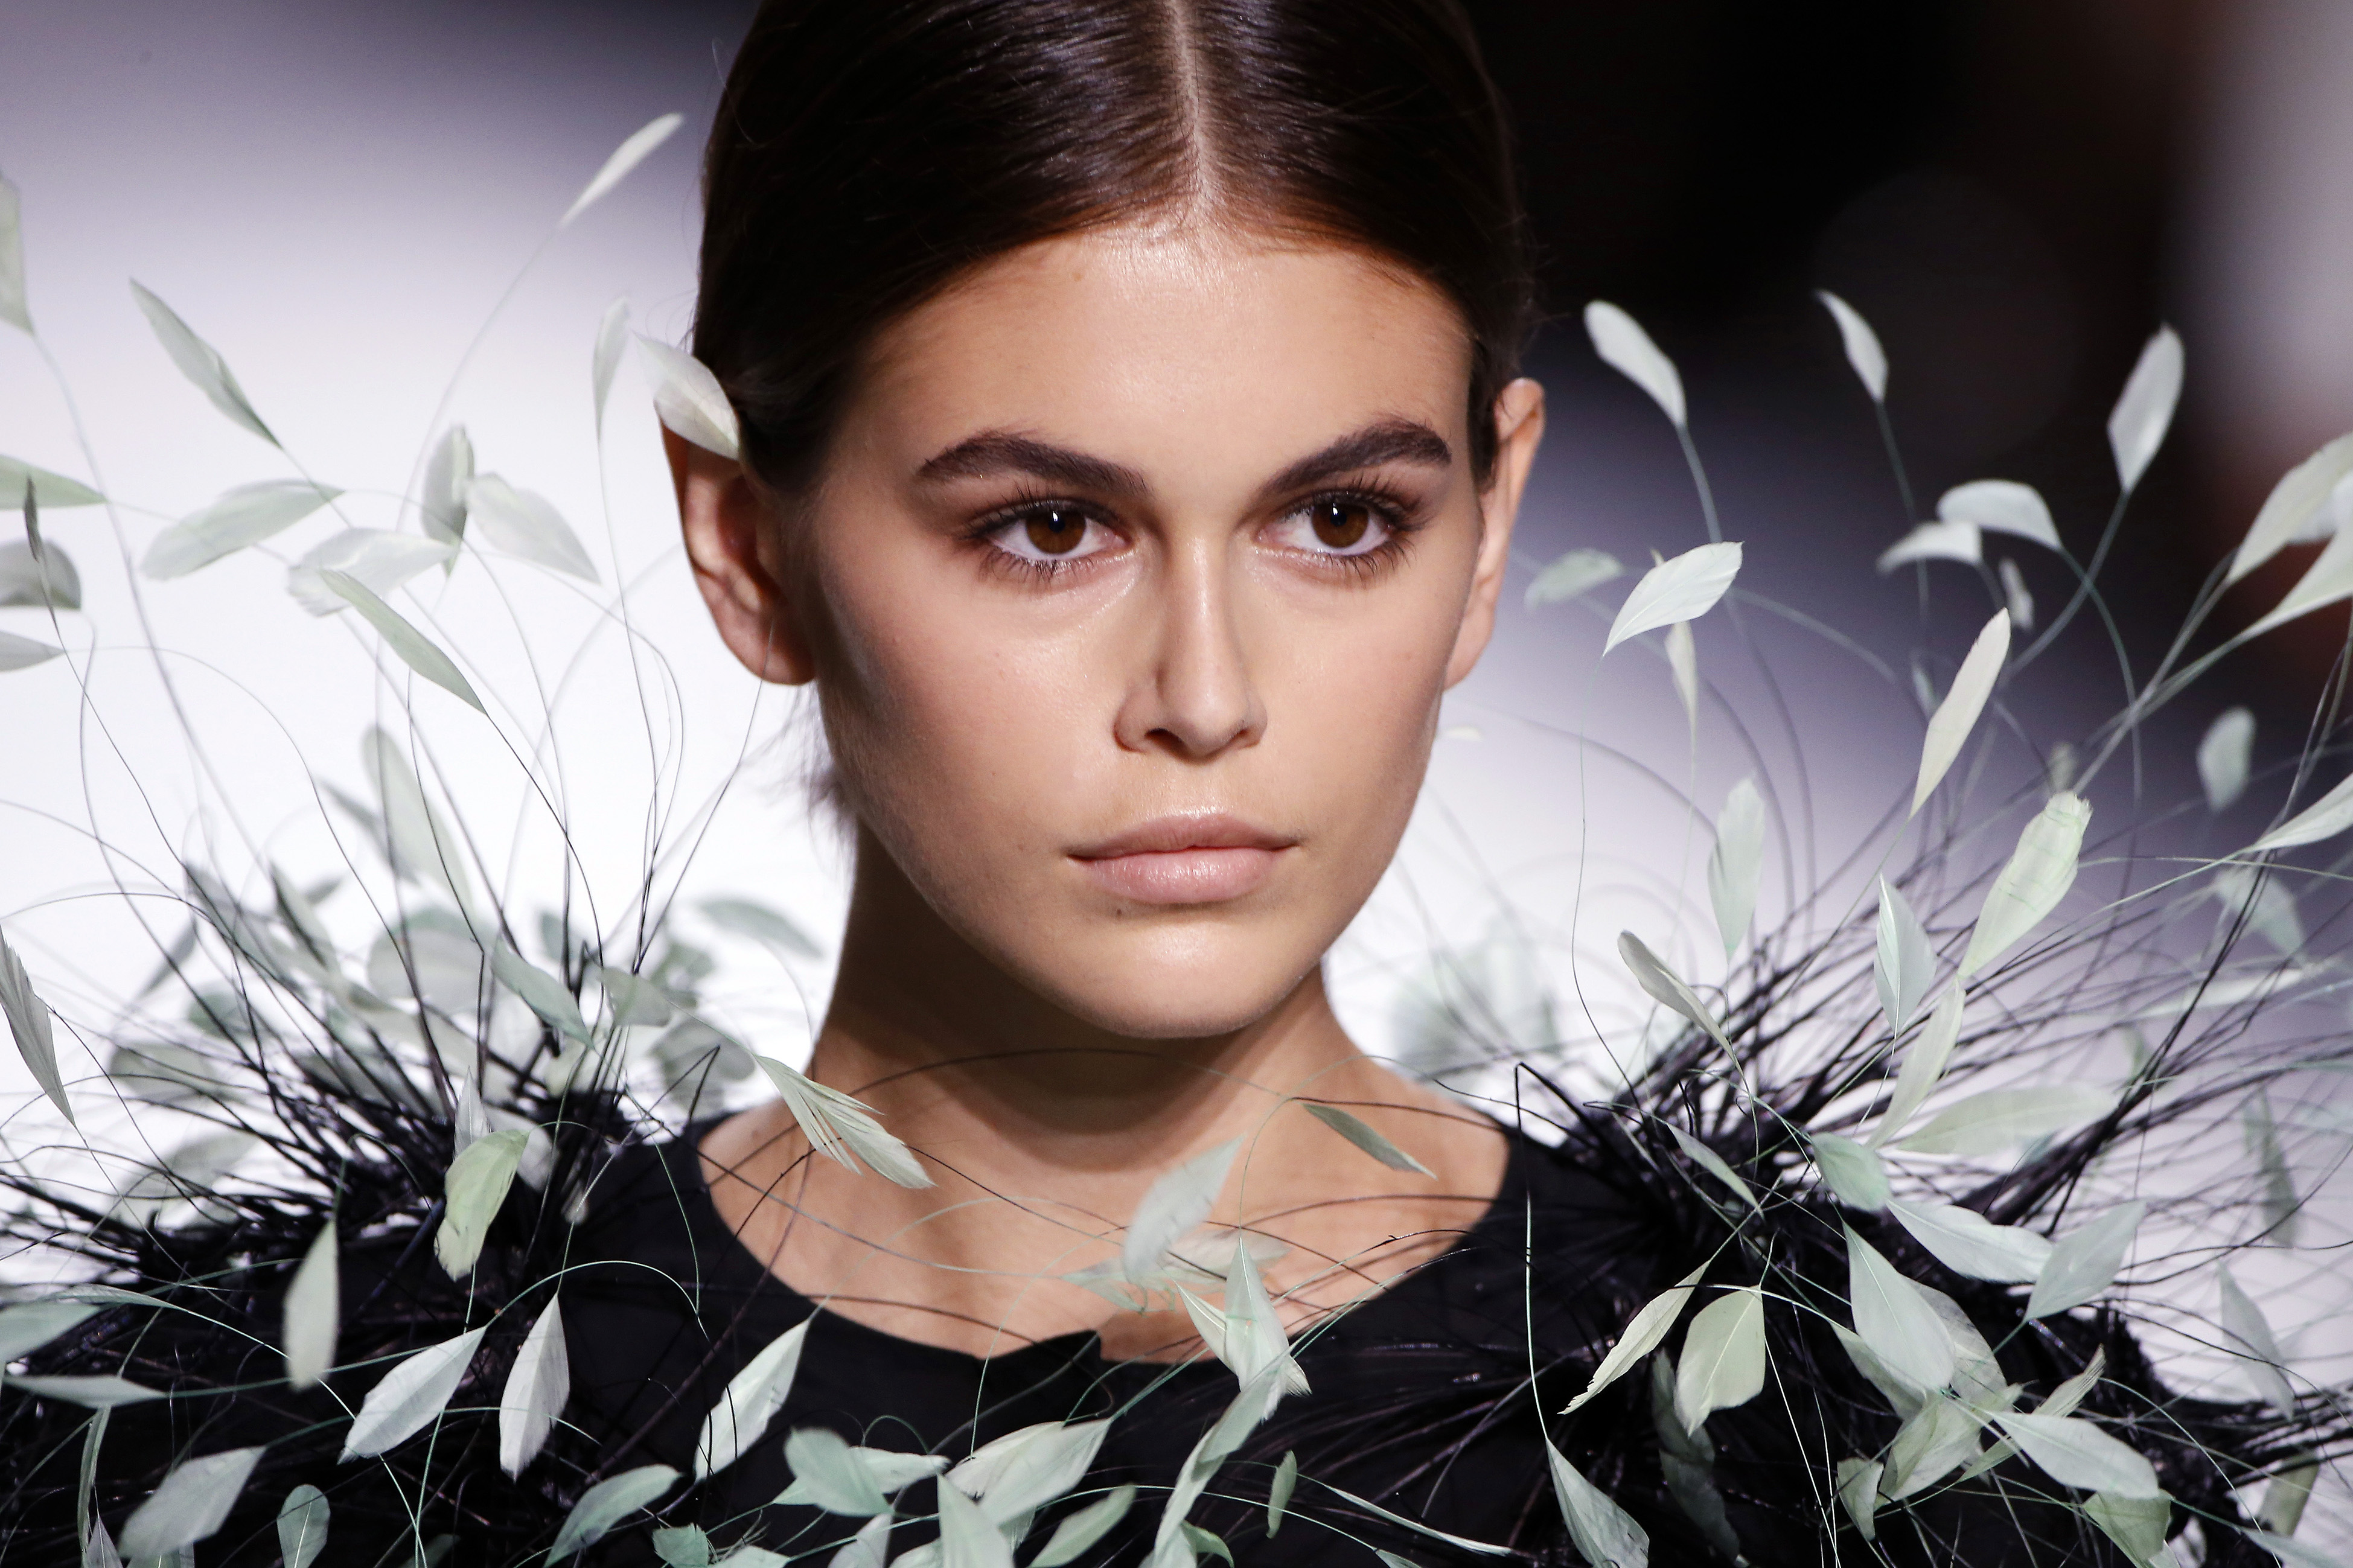 Kaia Gerber Just Went Full Big Bird on the Givenchy Runway